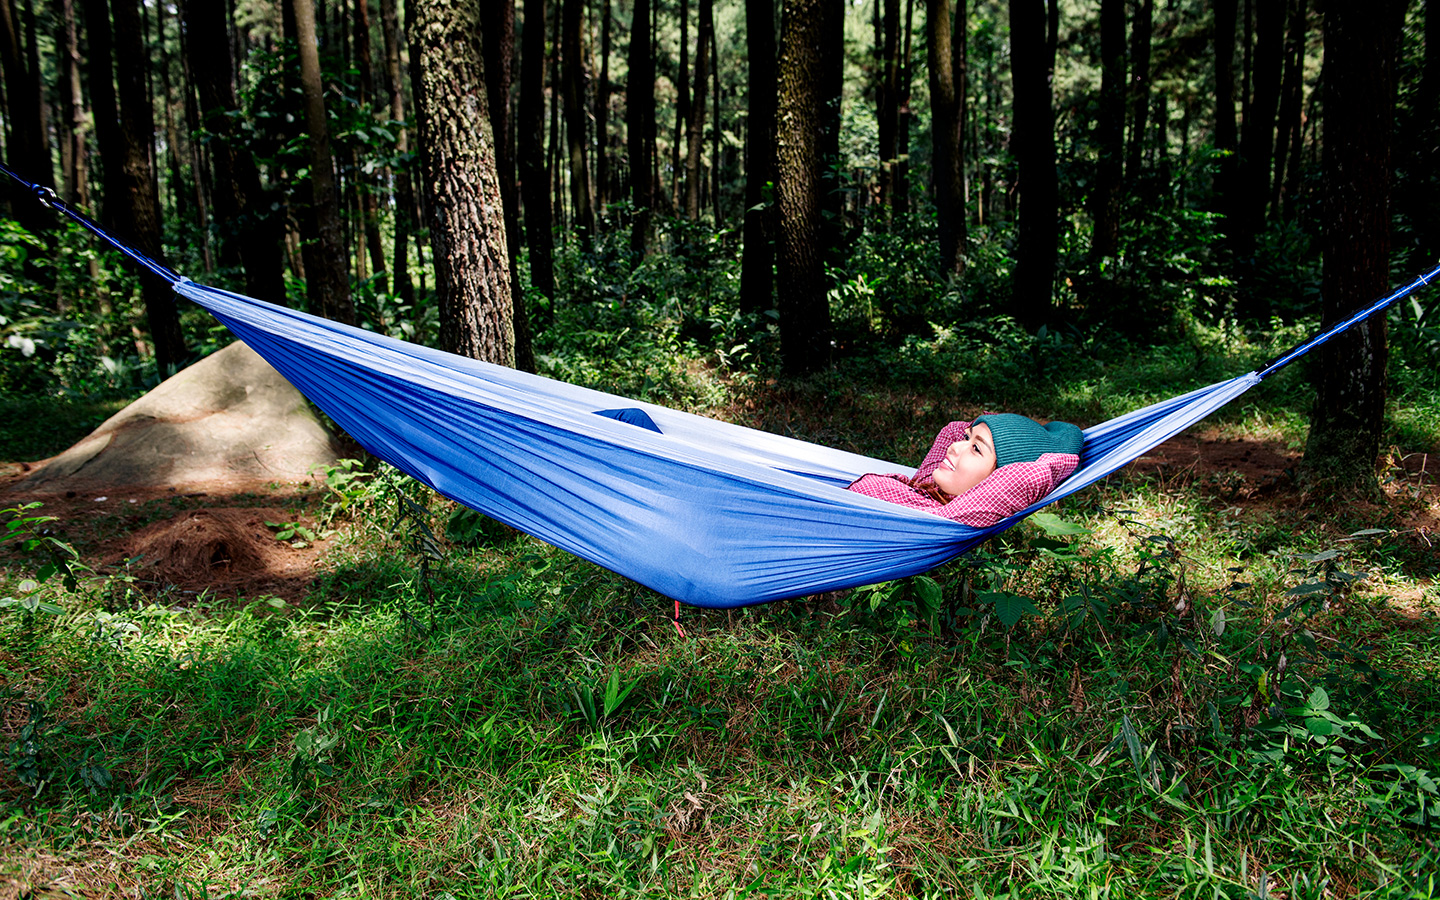 Woman relaxes in hammock in the woods